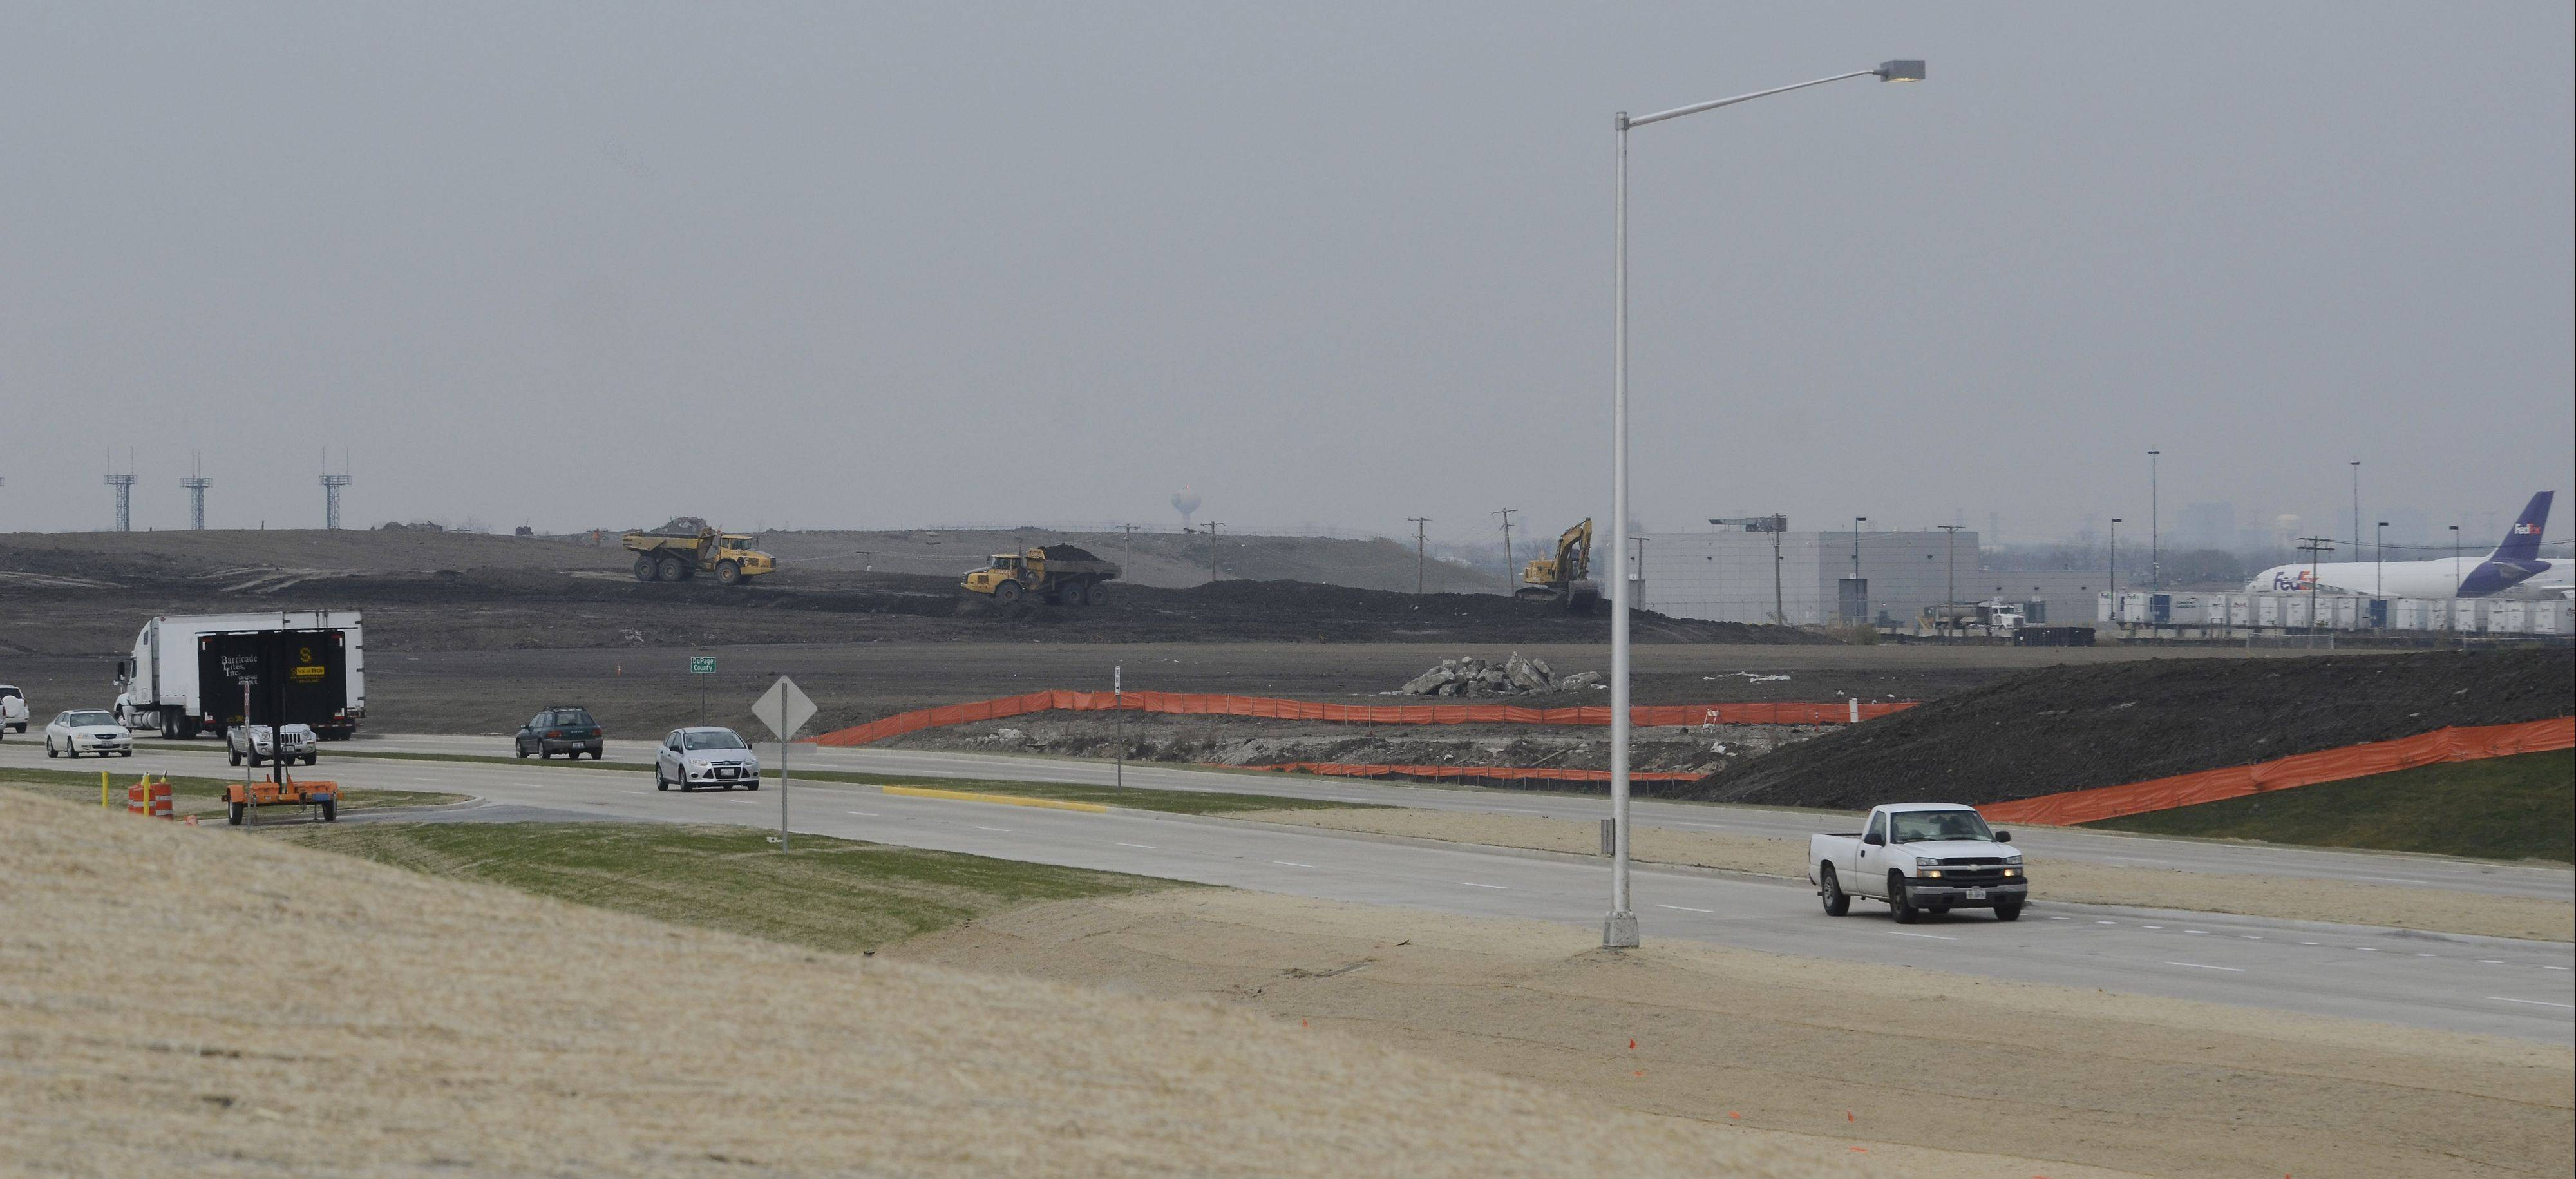 A new runway on the south side of O'Hare International Airport is set for completion next fall.